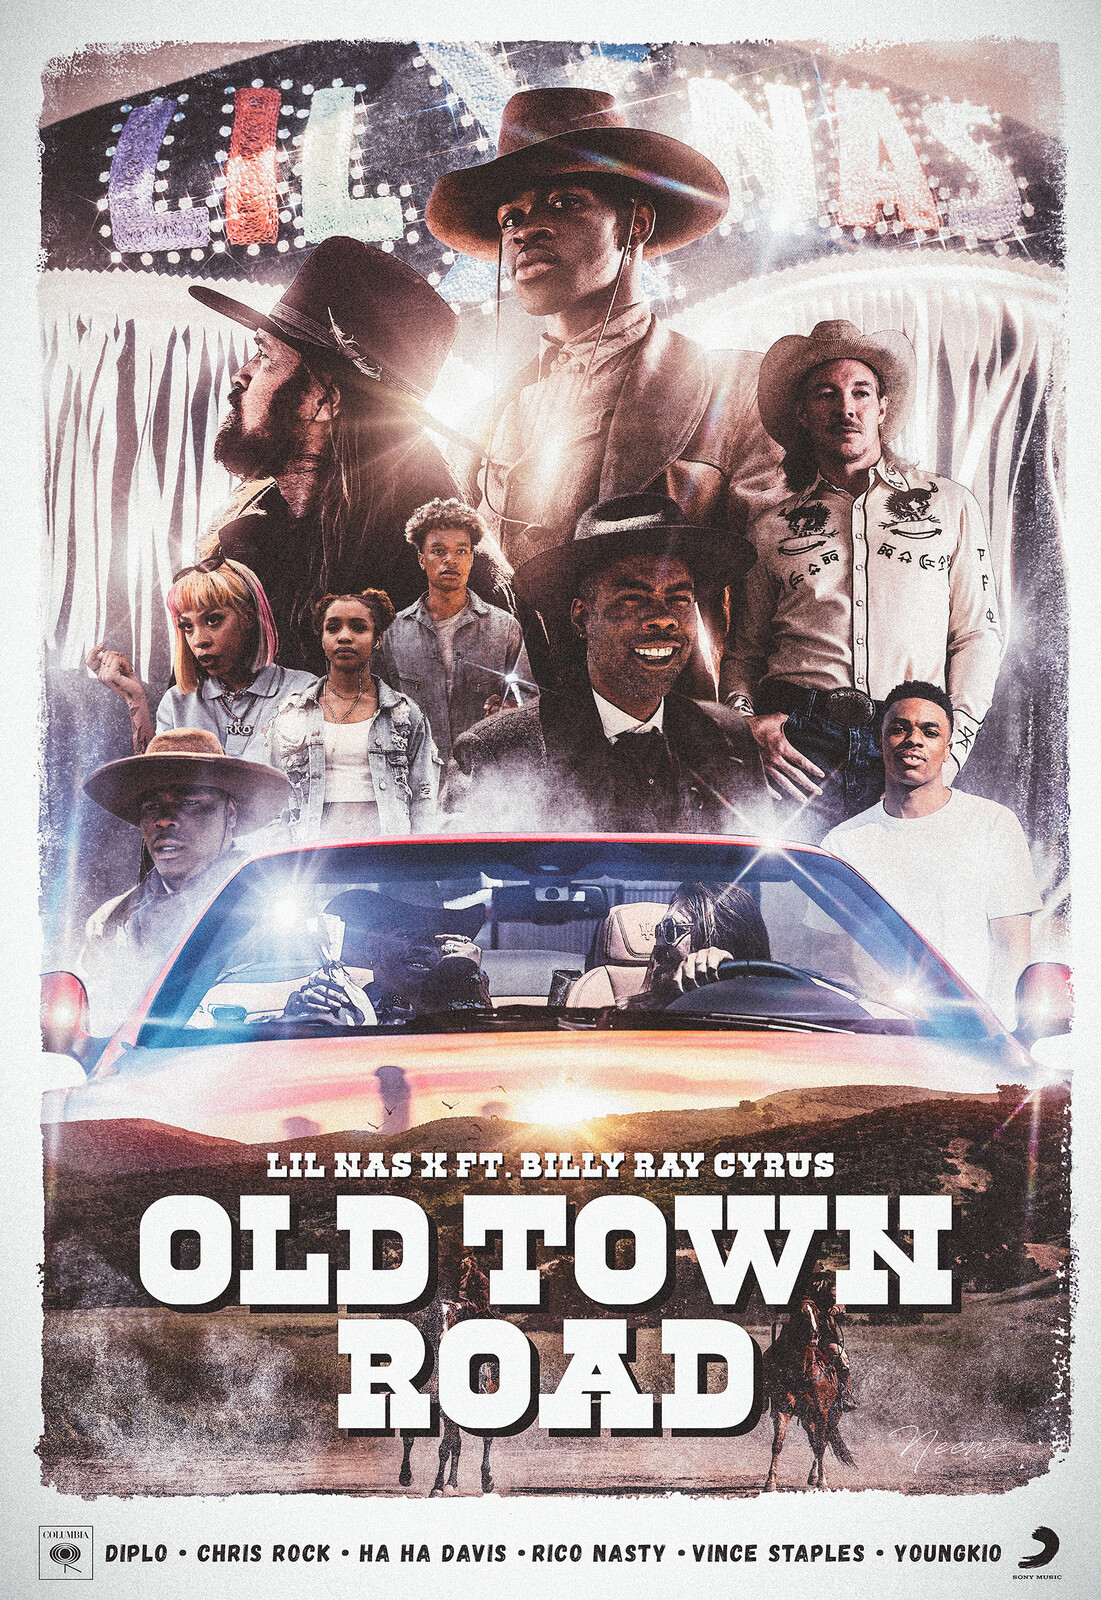 Old Town Road - Official Music Video Movie Poster